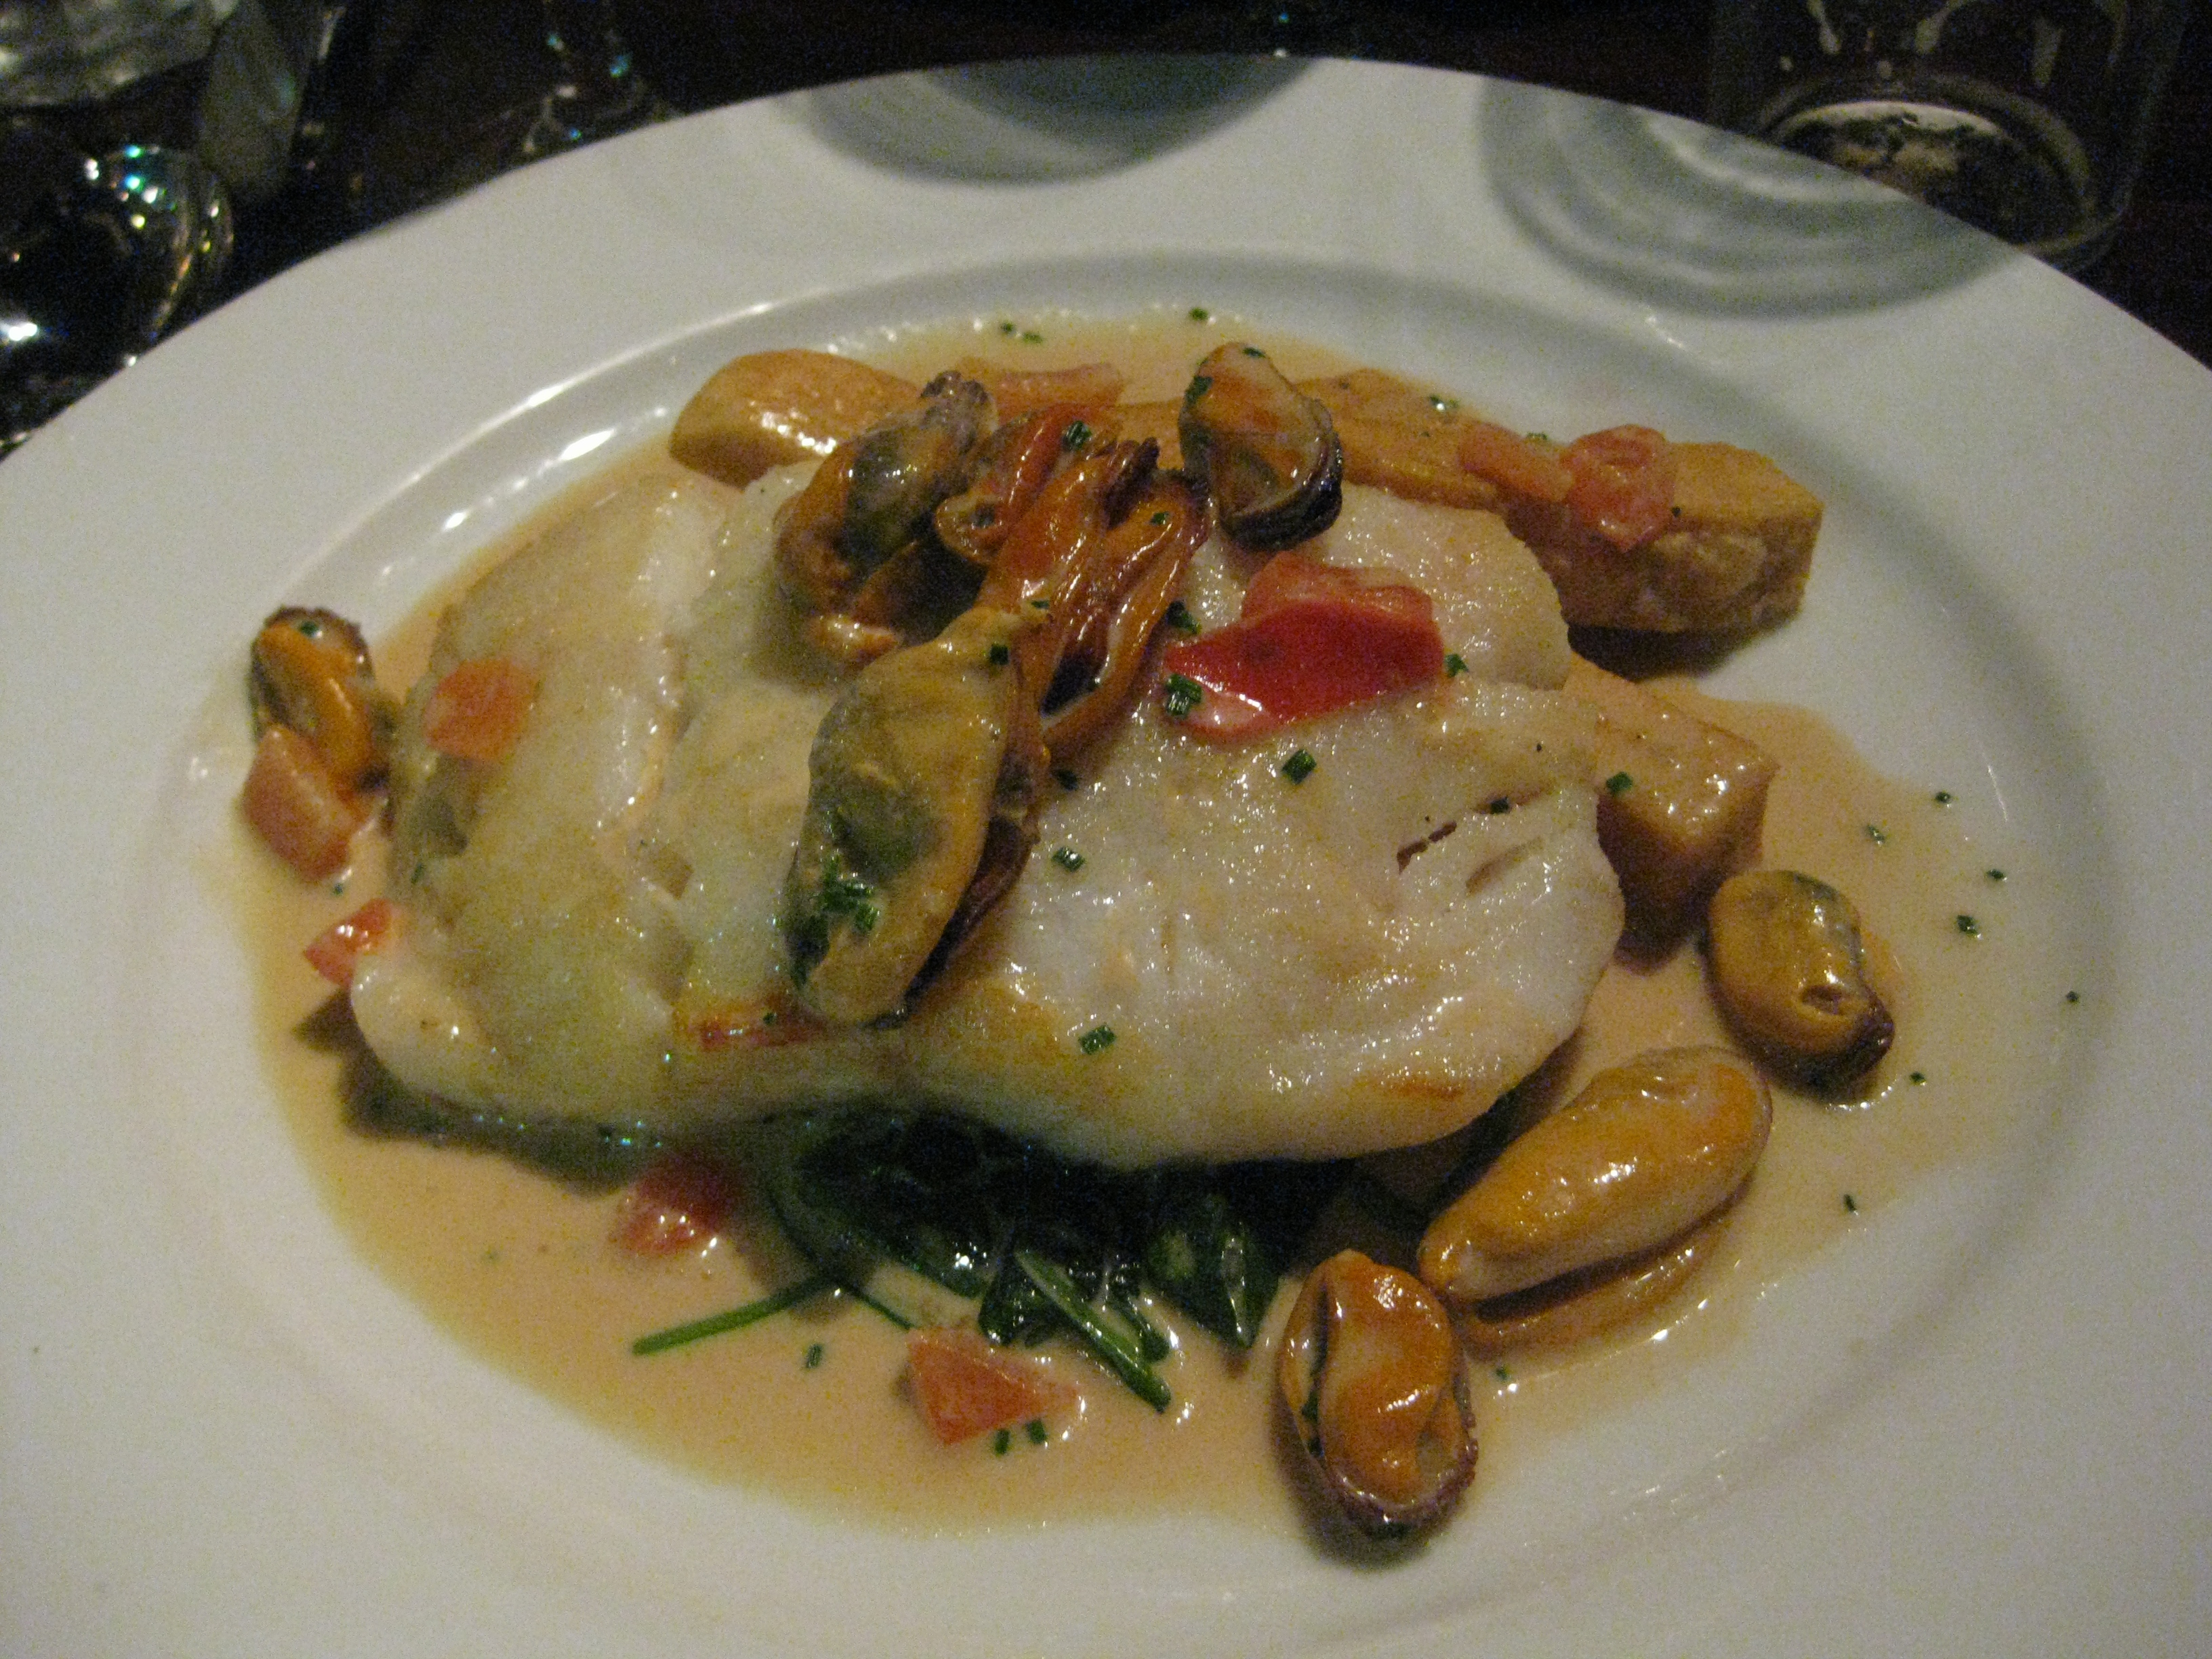 Cod with mussels and steams vegetables of some sort - my main. It was fab!